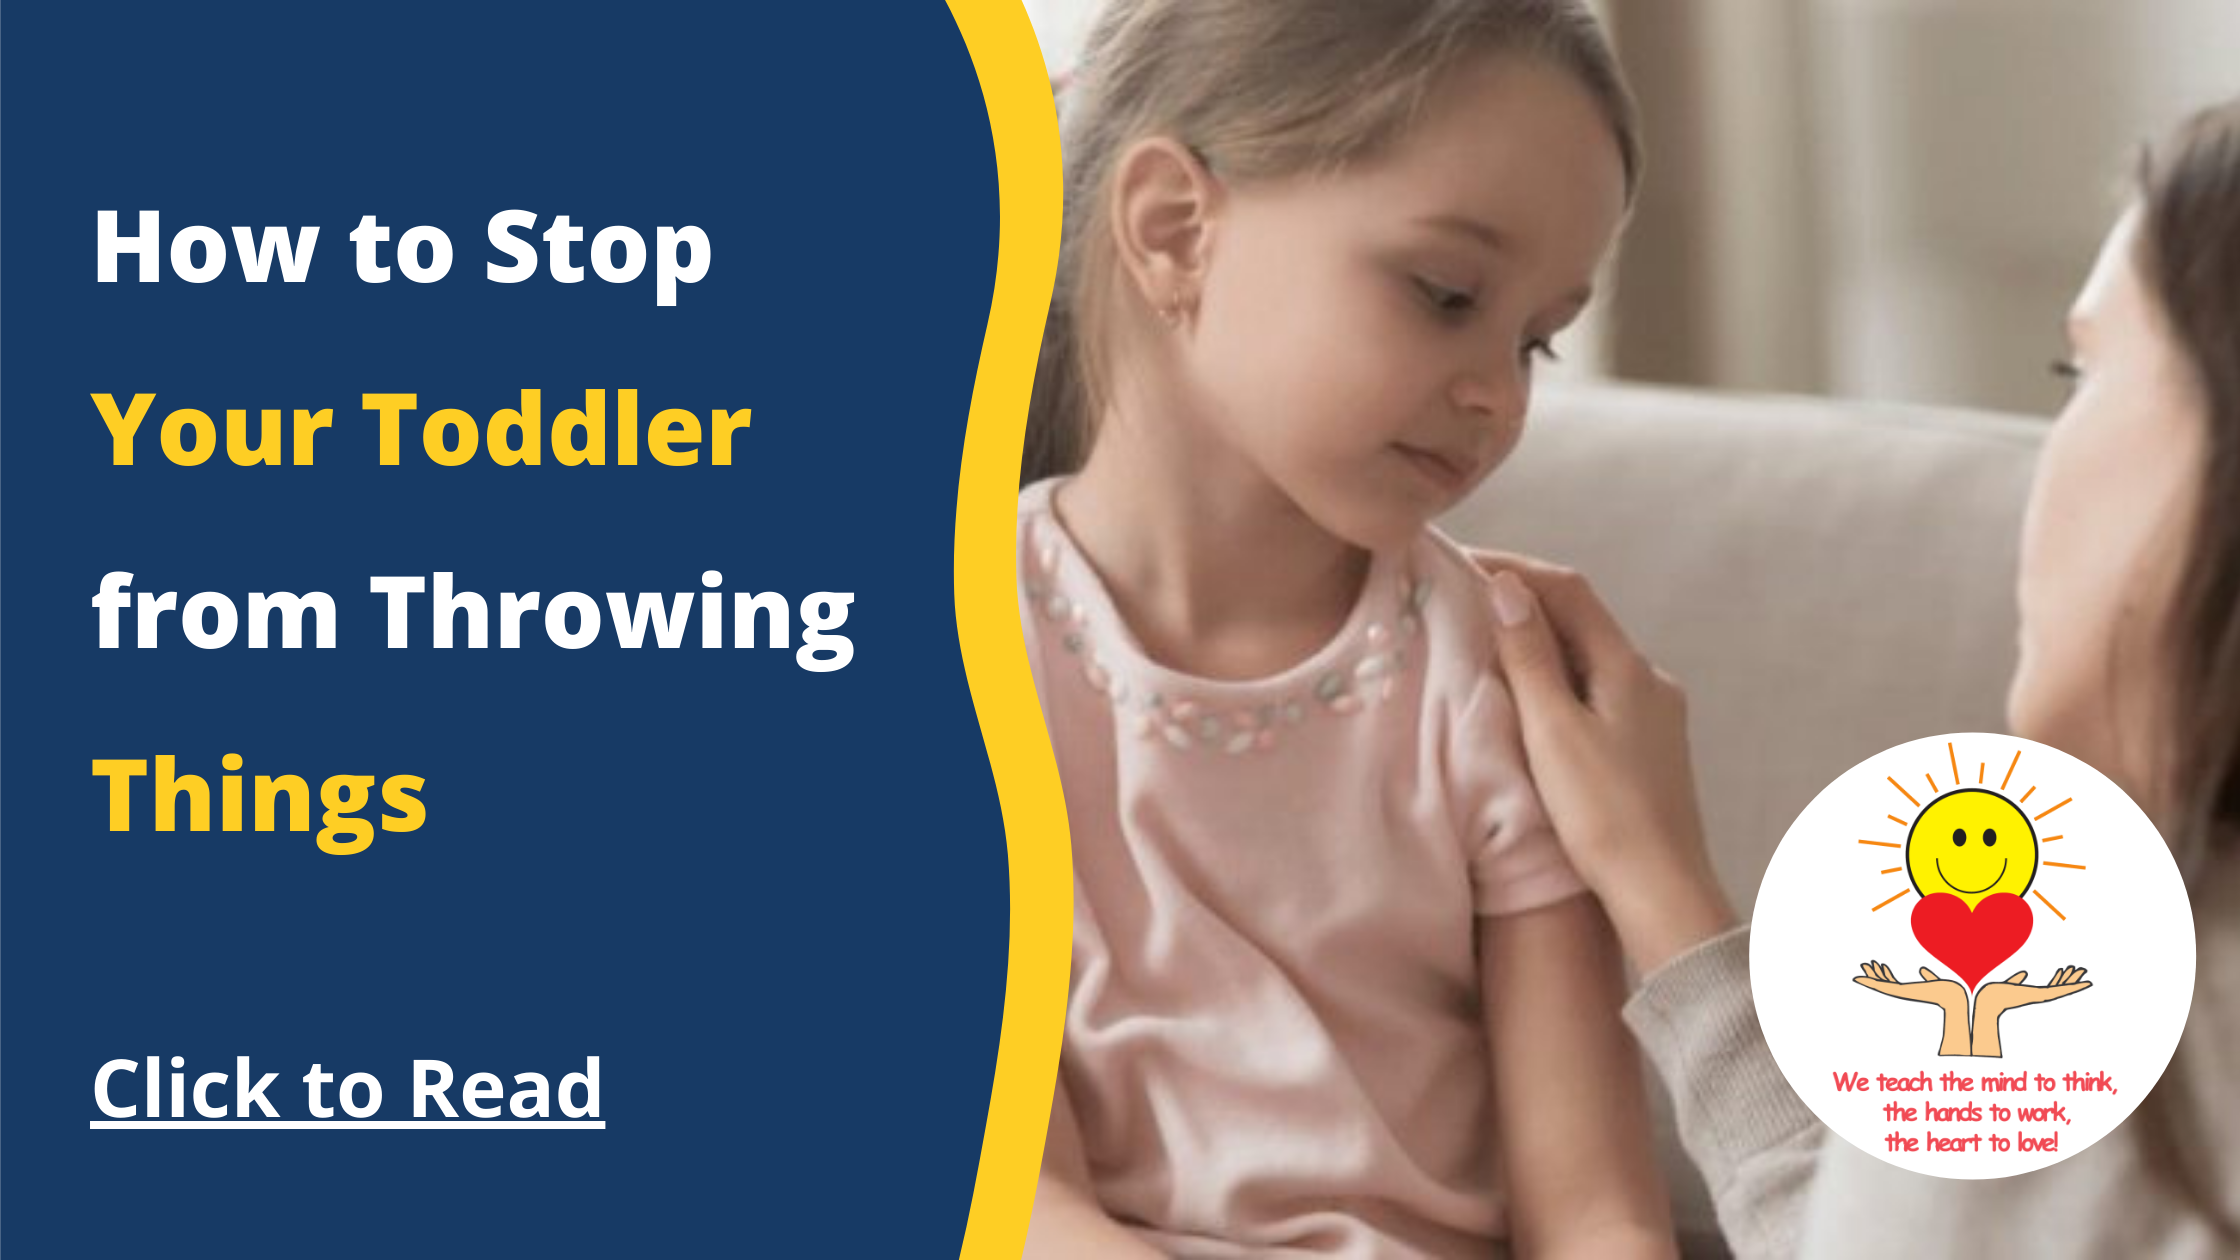 How to Stop Your Toddler from Throwing Things